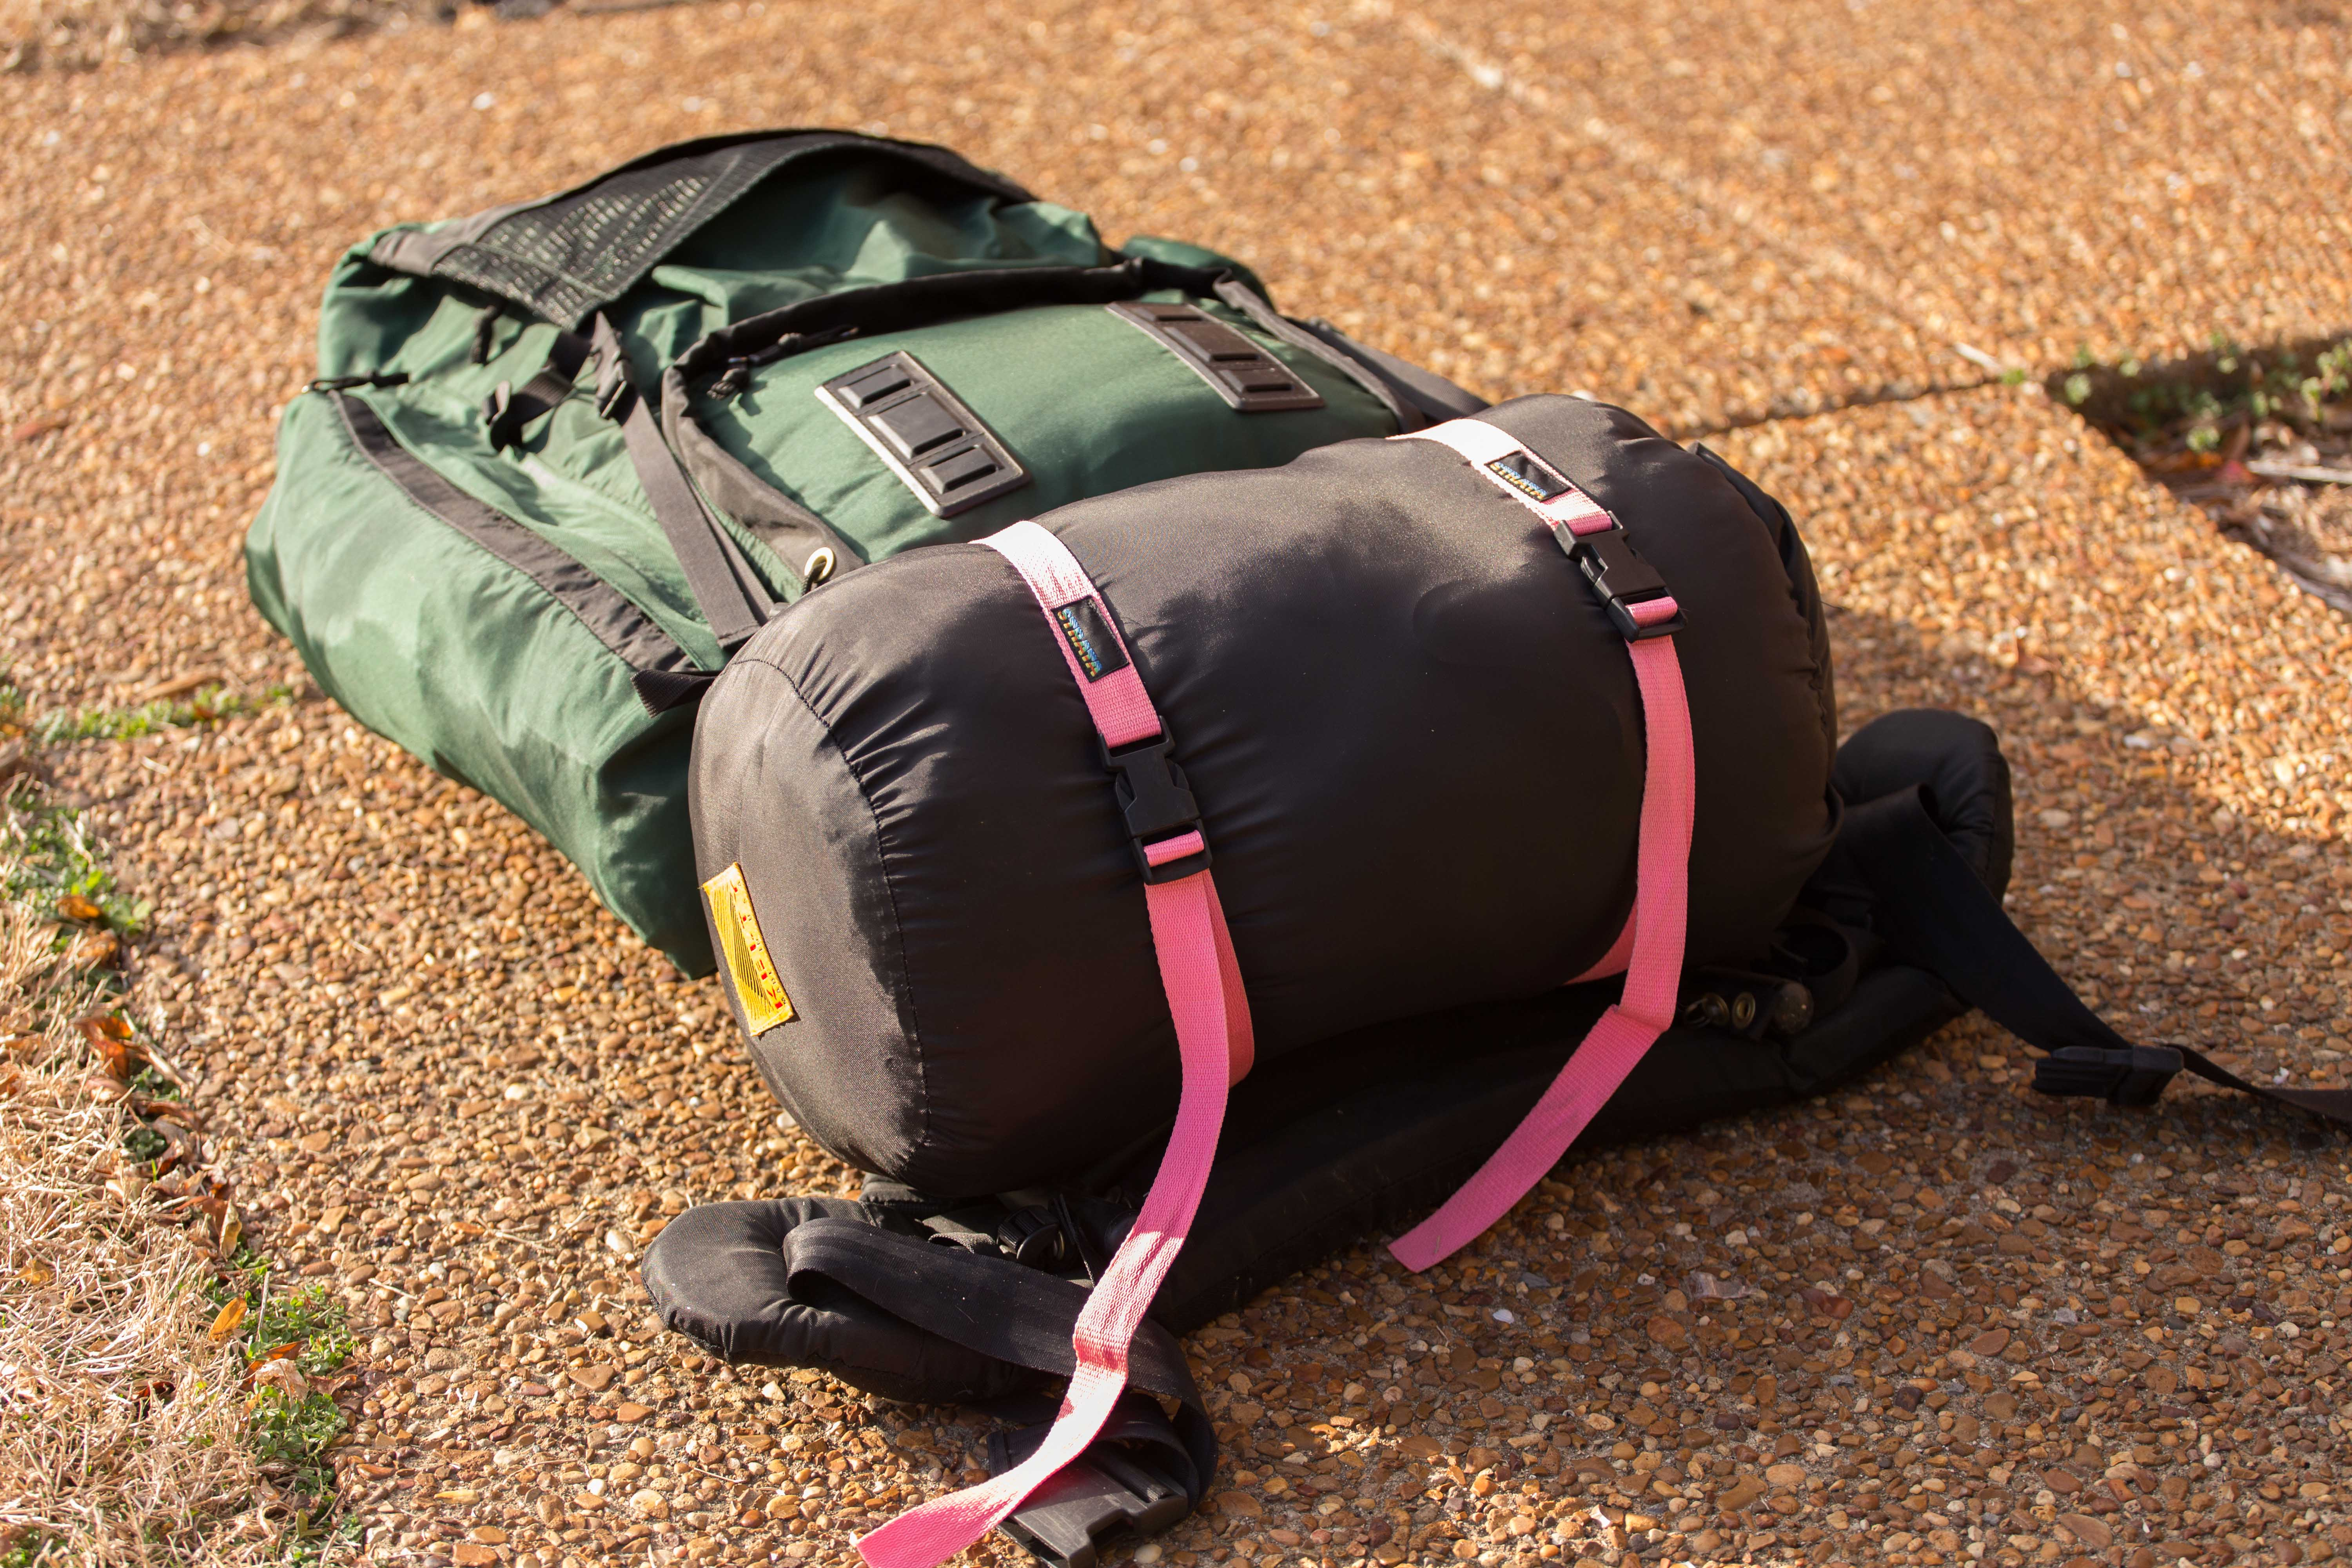 Adjust So That The Sleeping Bag Is Secure And Stable You Want Straps Digging Into To Point It Wont Bounce Around Or Fall Out